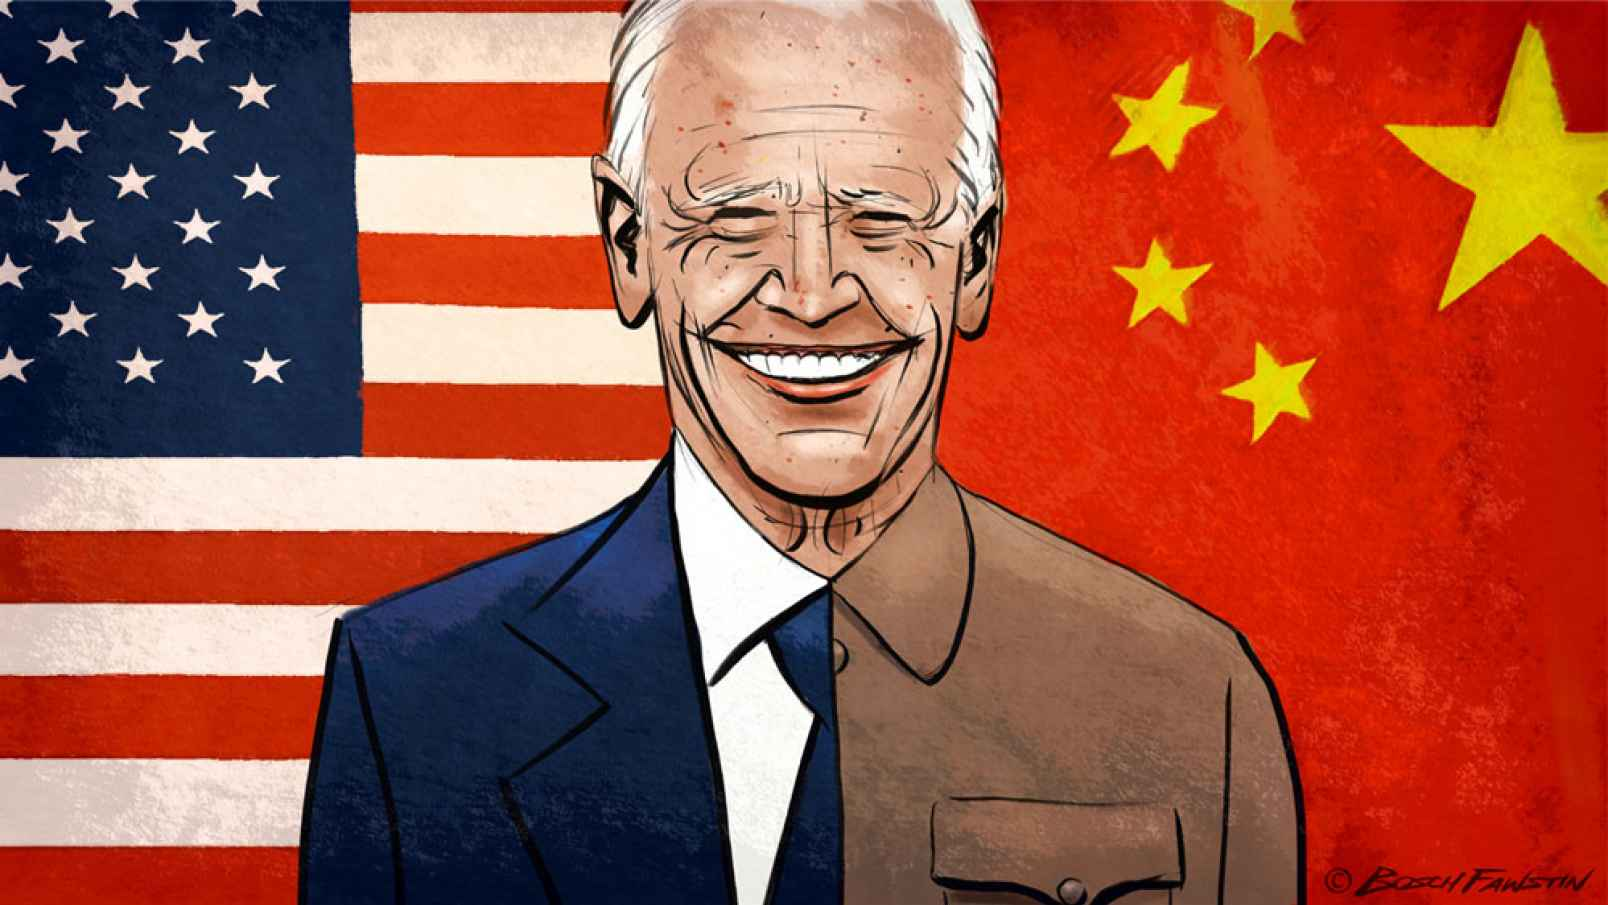 Biden Sold Out America to China While Working for Hollywood | Frontpage Mag